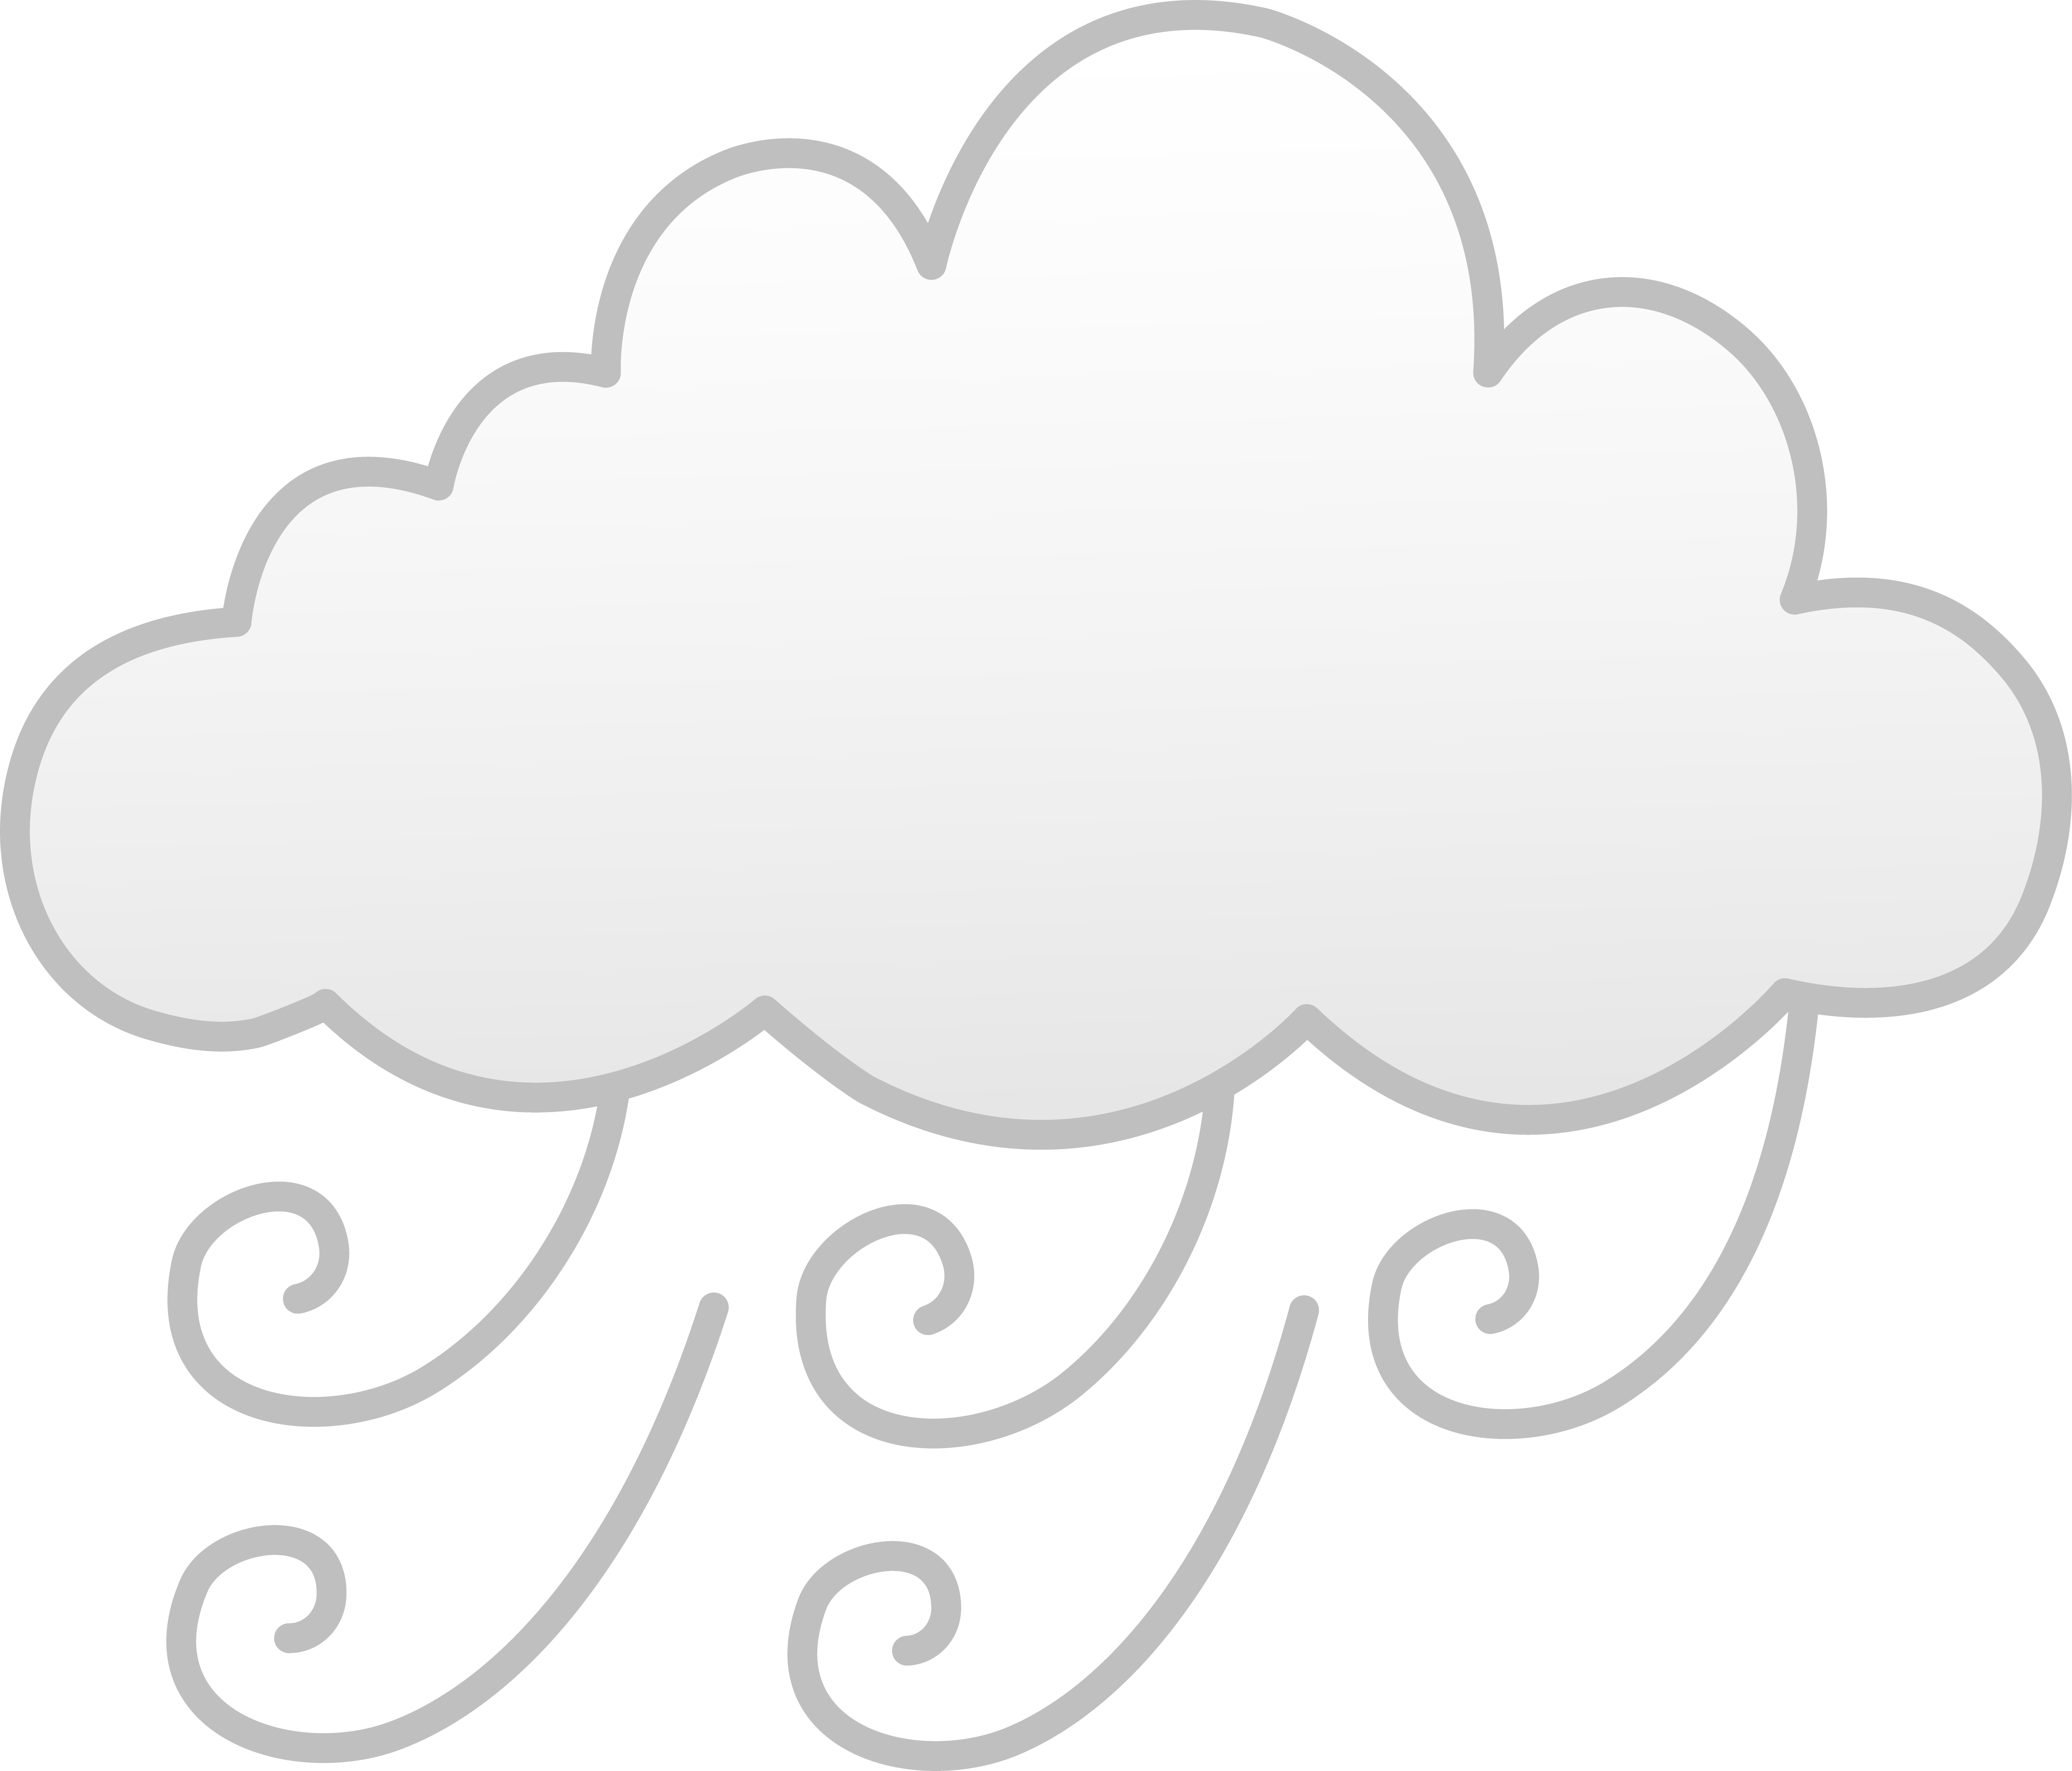 6 Windy Weather Icon Images